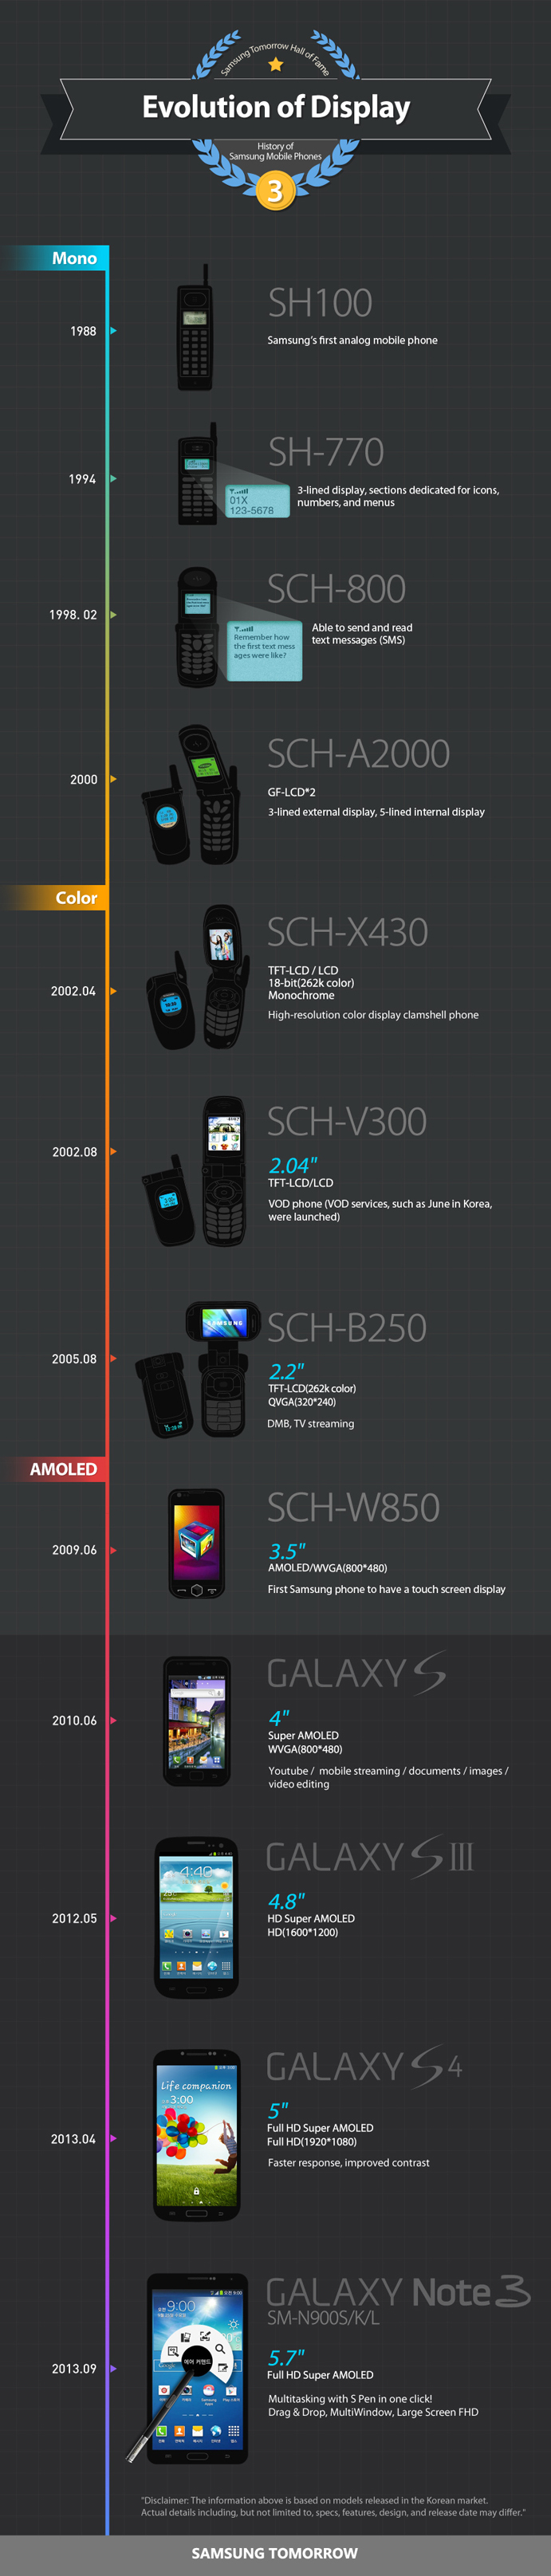 Evolution of Samsung Mobile Phones' Display